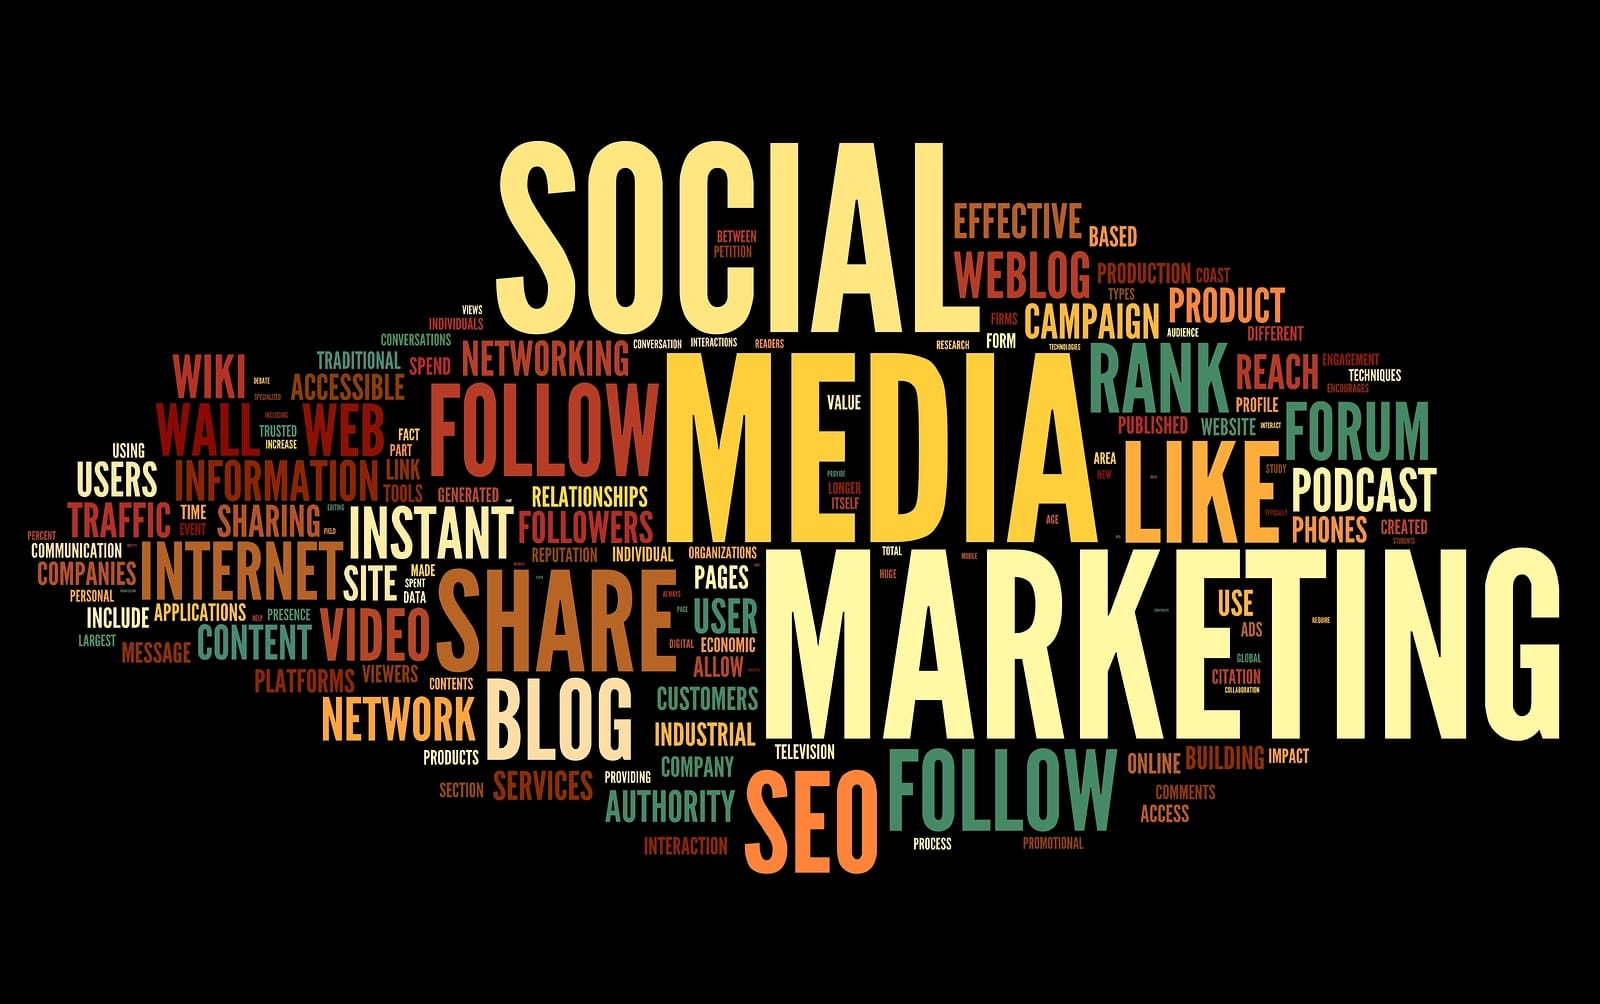 Social Media Marketing - What it Is and the Way to Use it For Your Enterprise